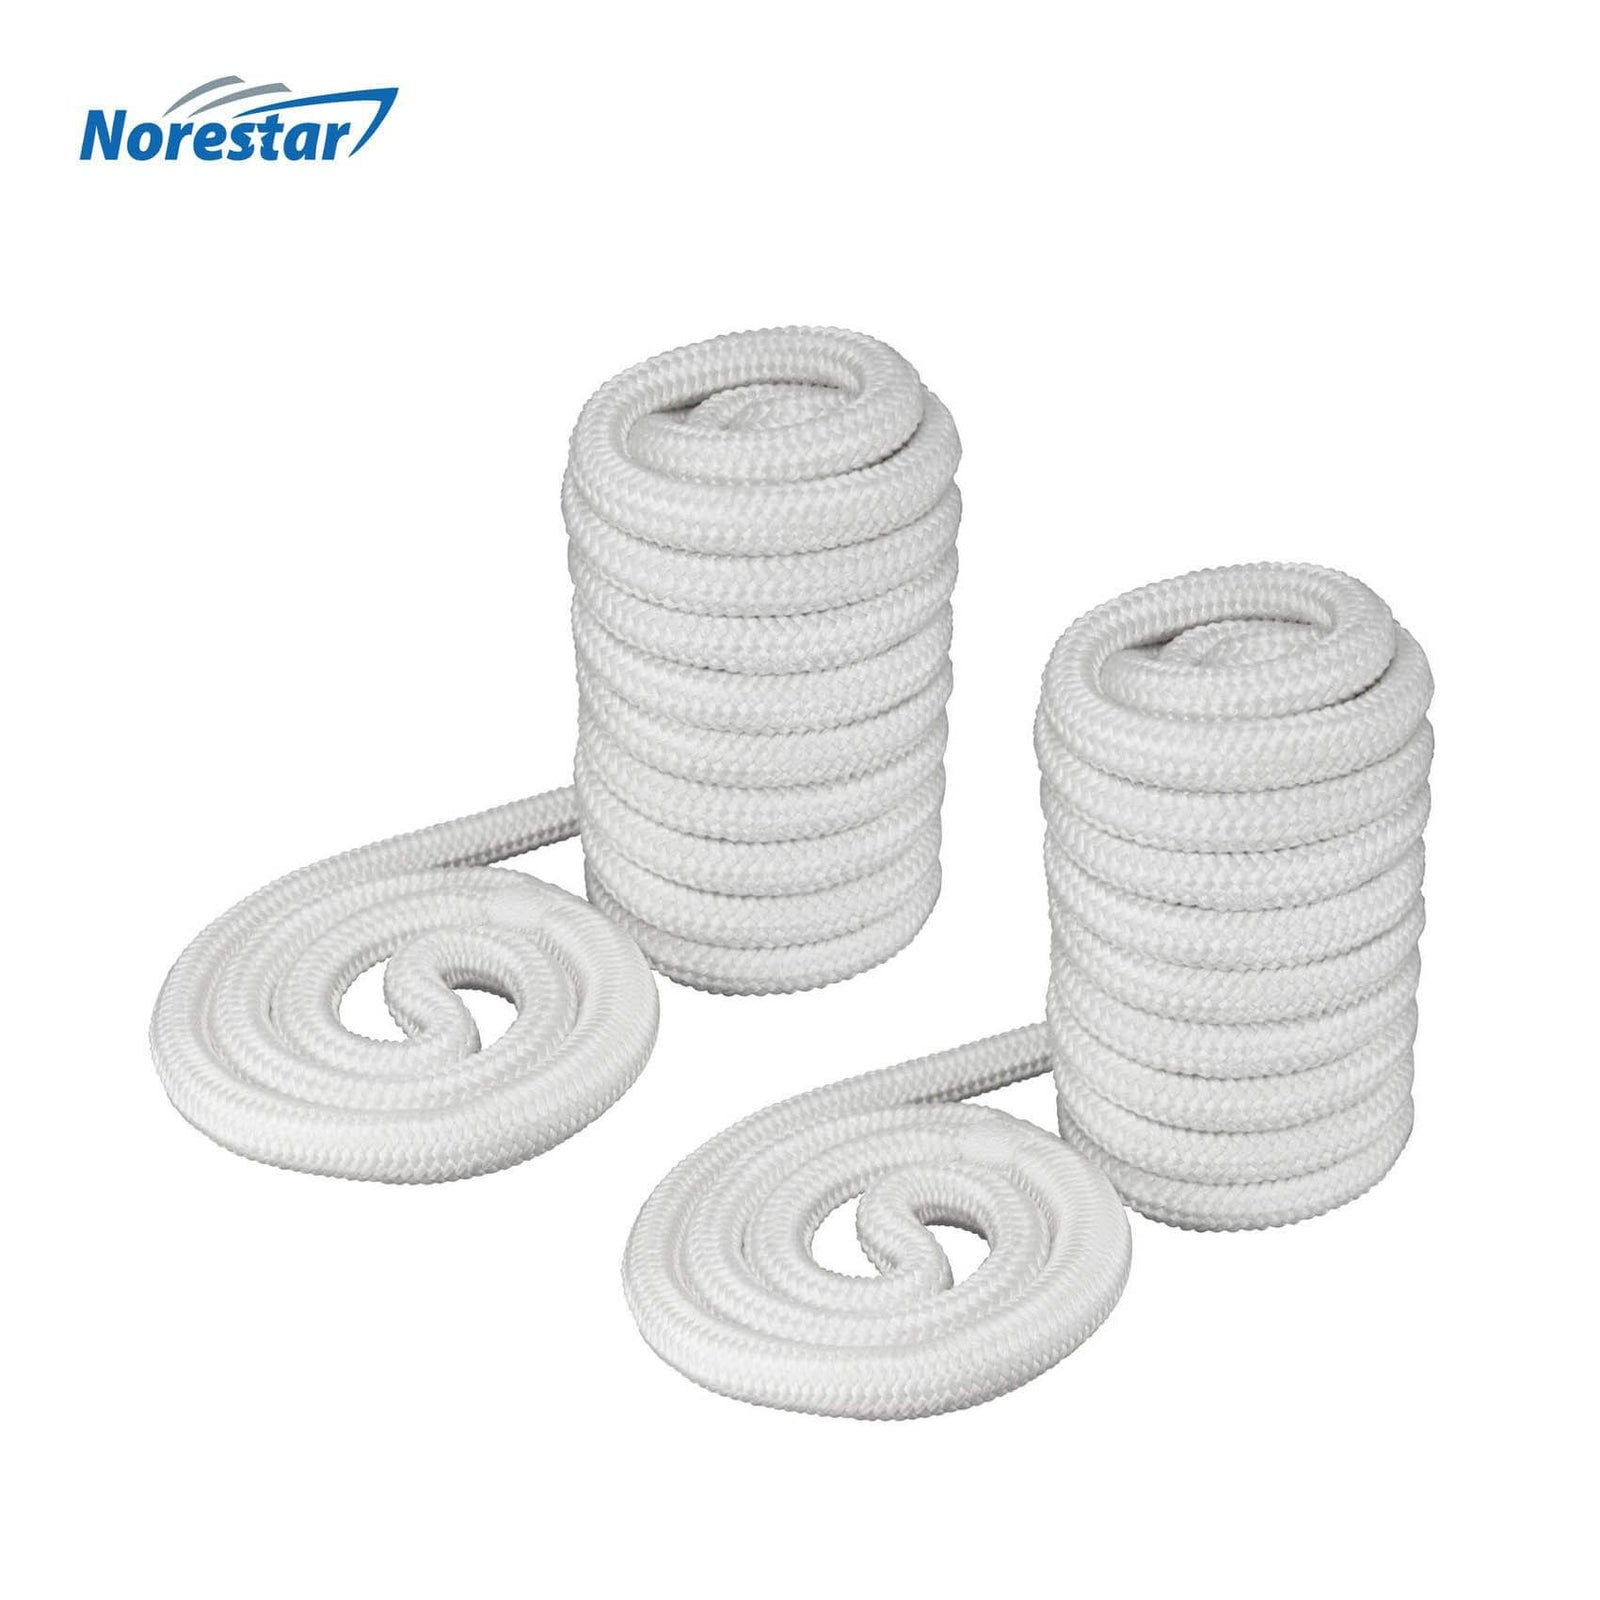 Two Norestar Braided Nylon Dock Lines, White